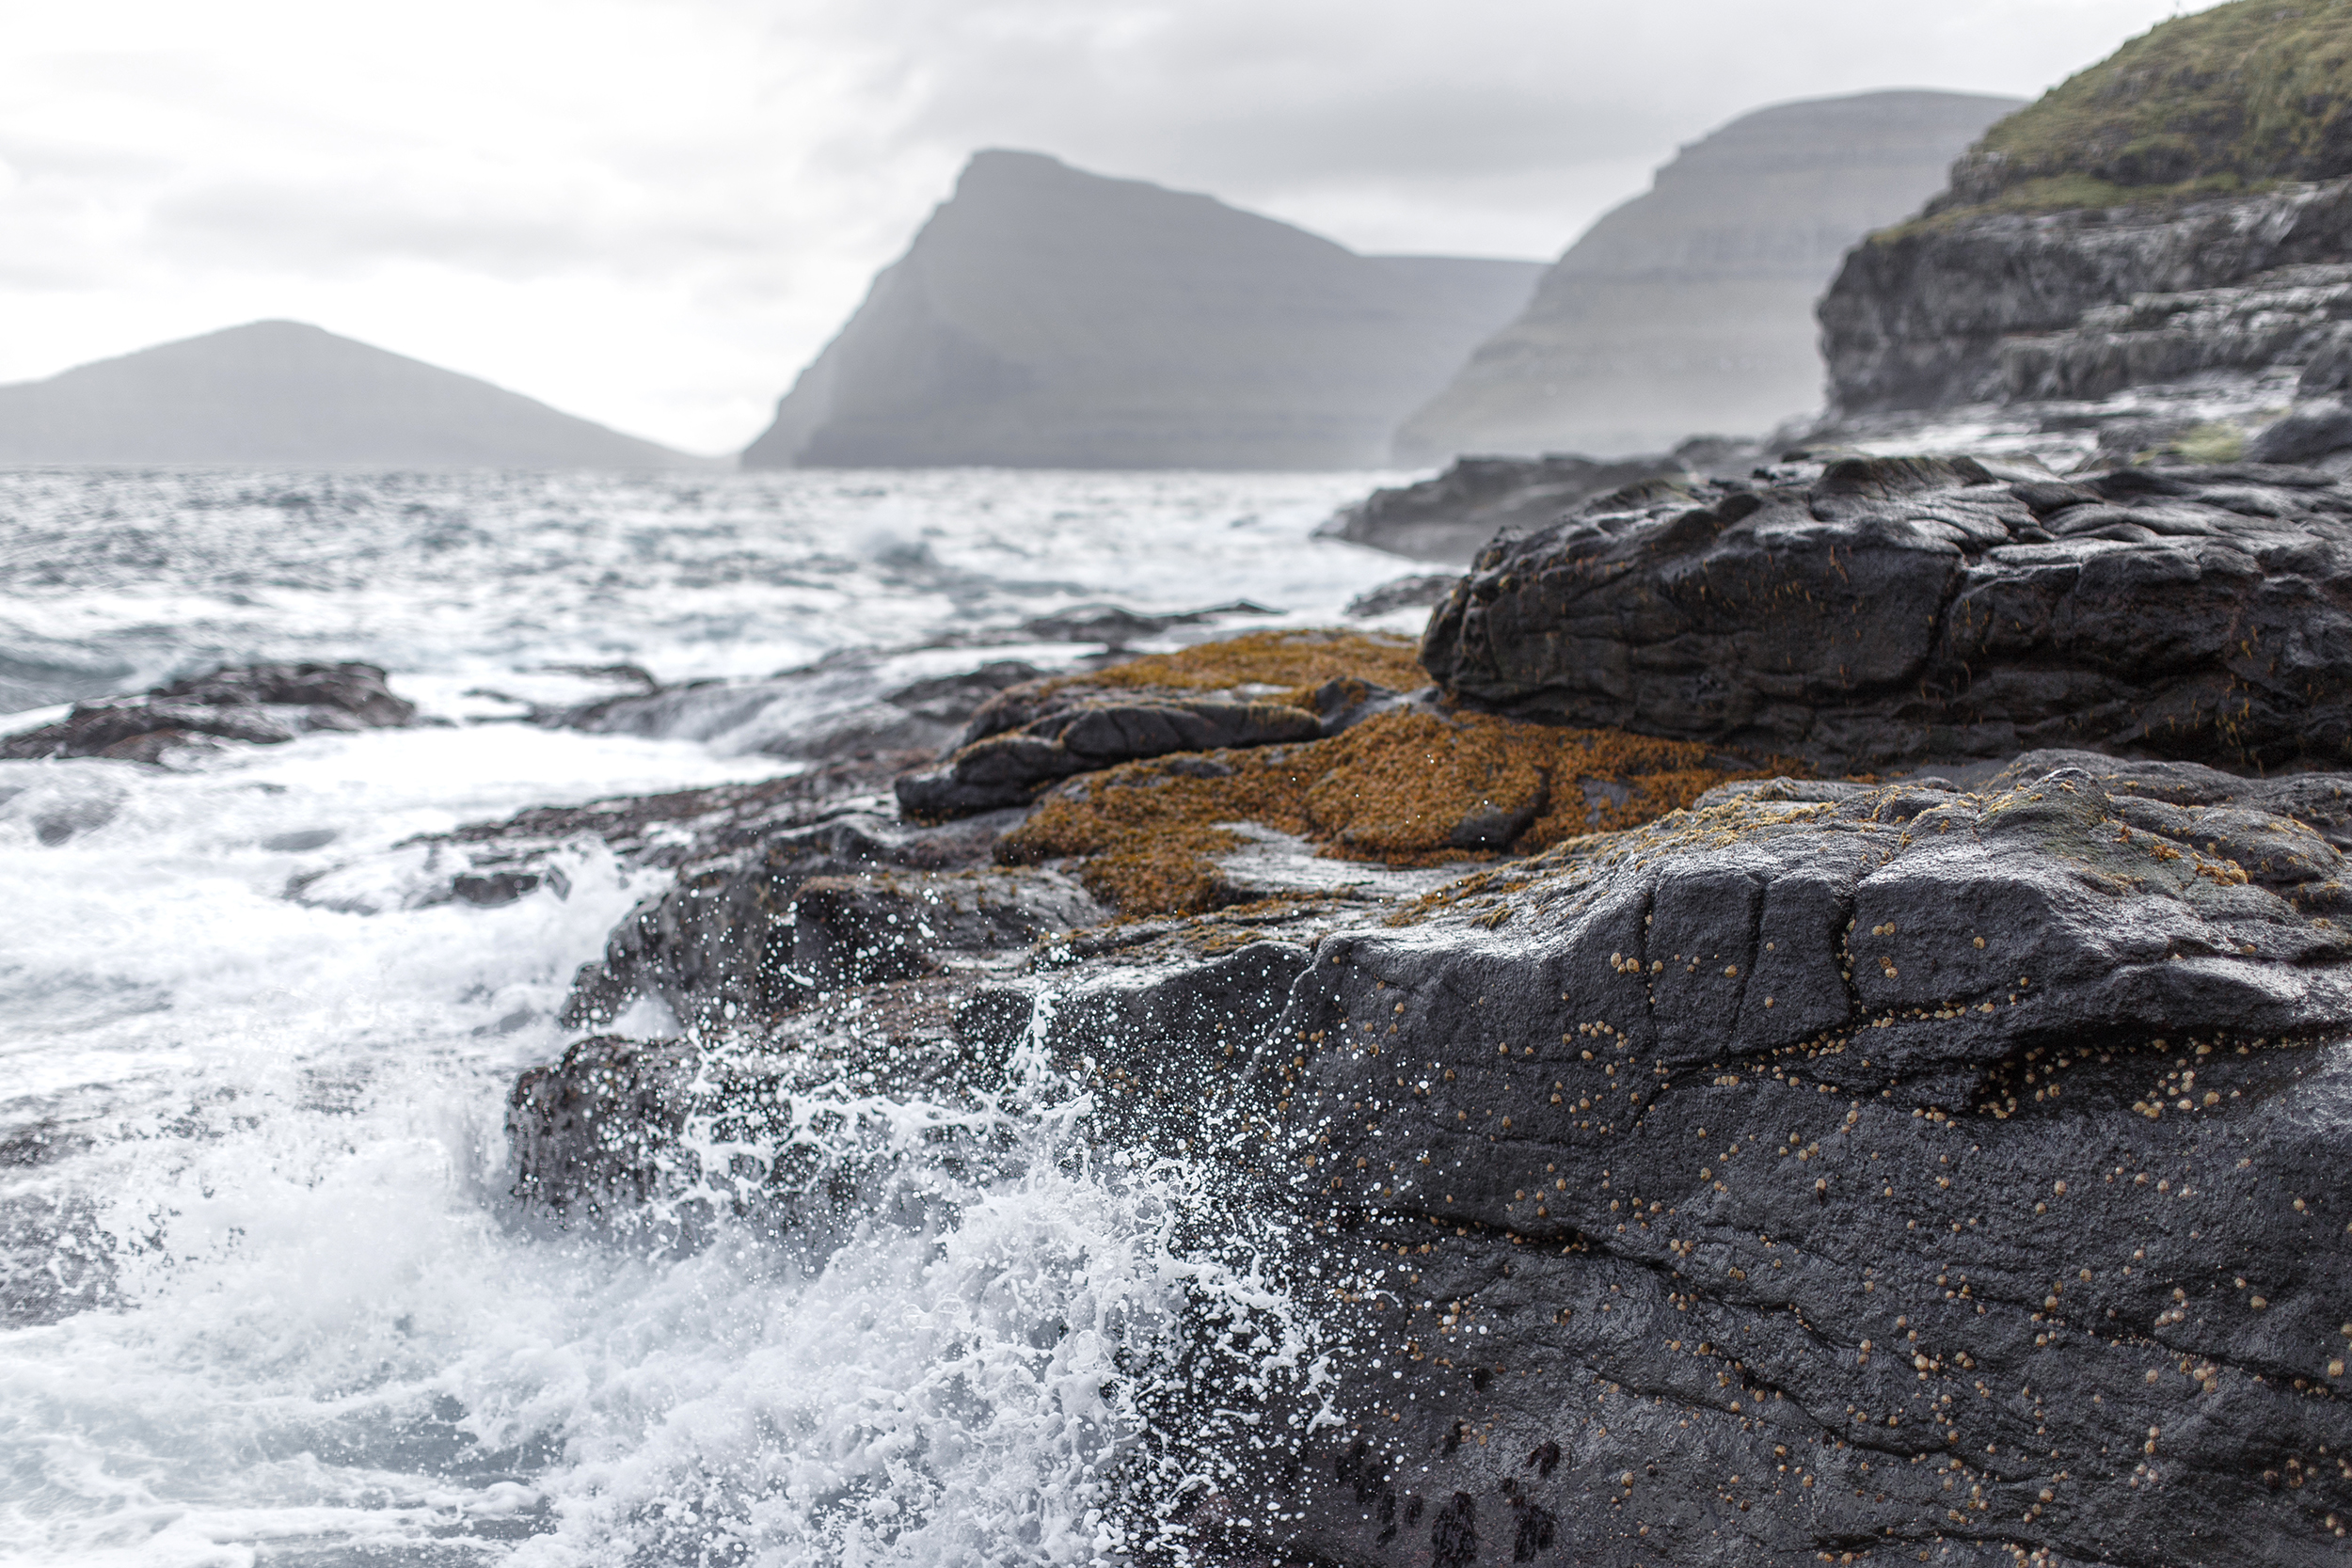 The Faroe Islands